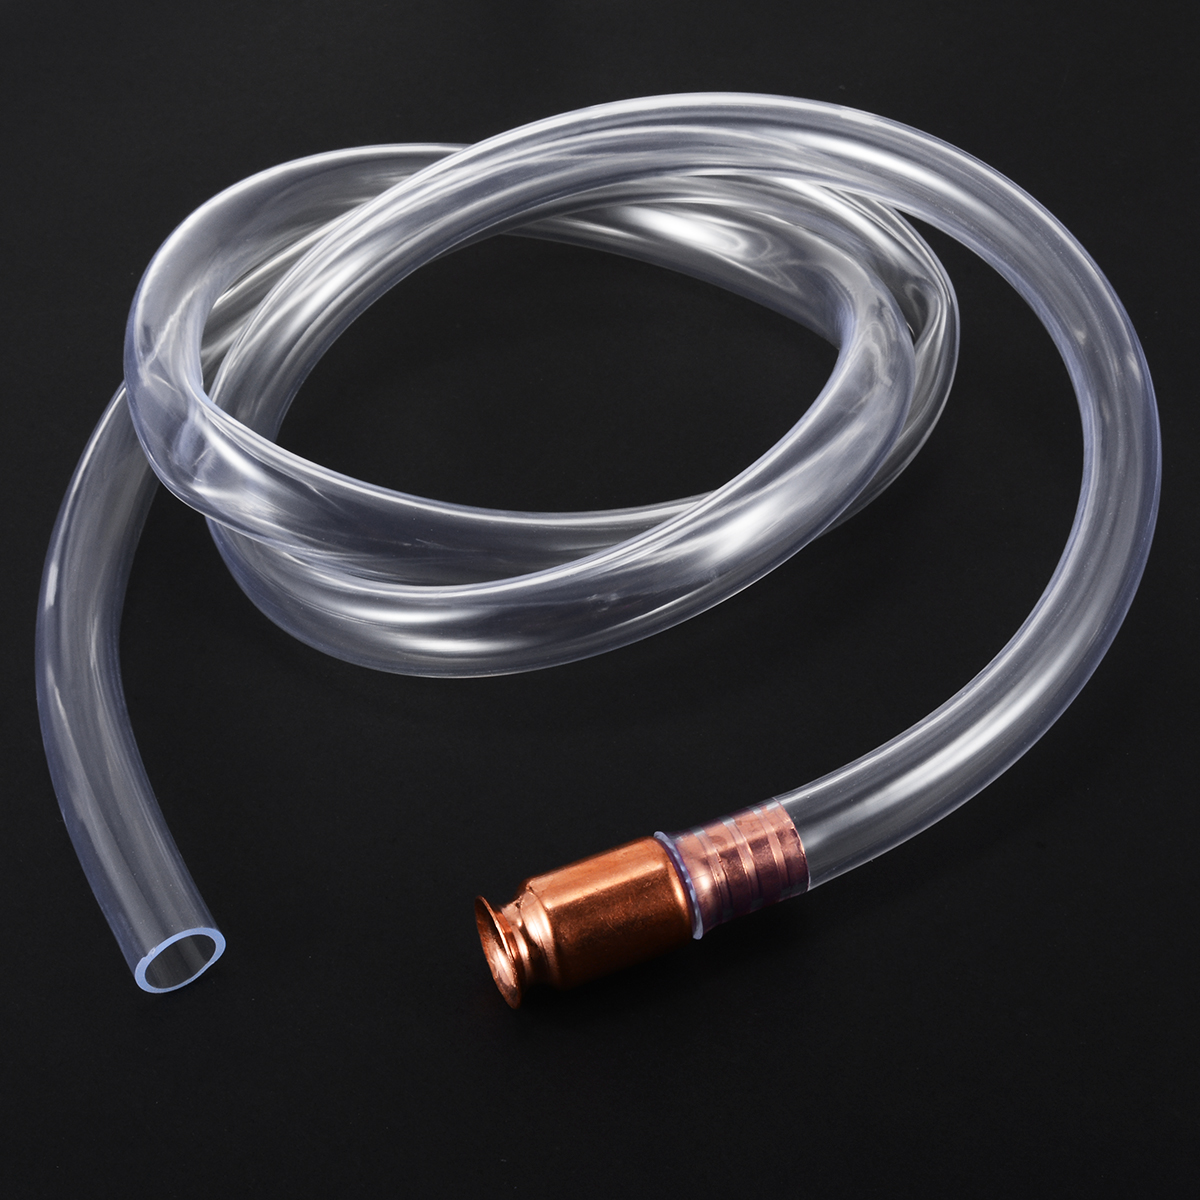 Mayitr Gas Siphon Pump Gasoline Fuel Water Shaker Siphon Safety Self Priming Hose Pipe Plumbing Hoses 1520mm*18mm TransparentMayitr Gas Siphon Pump Gasoline Fuel Water Shaker Siphon Safety Self Priming Hose Pipe Plumbing Hoses 1520mm*18mm Transparent